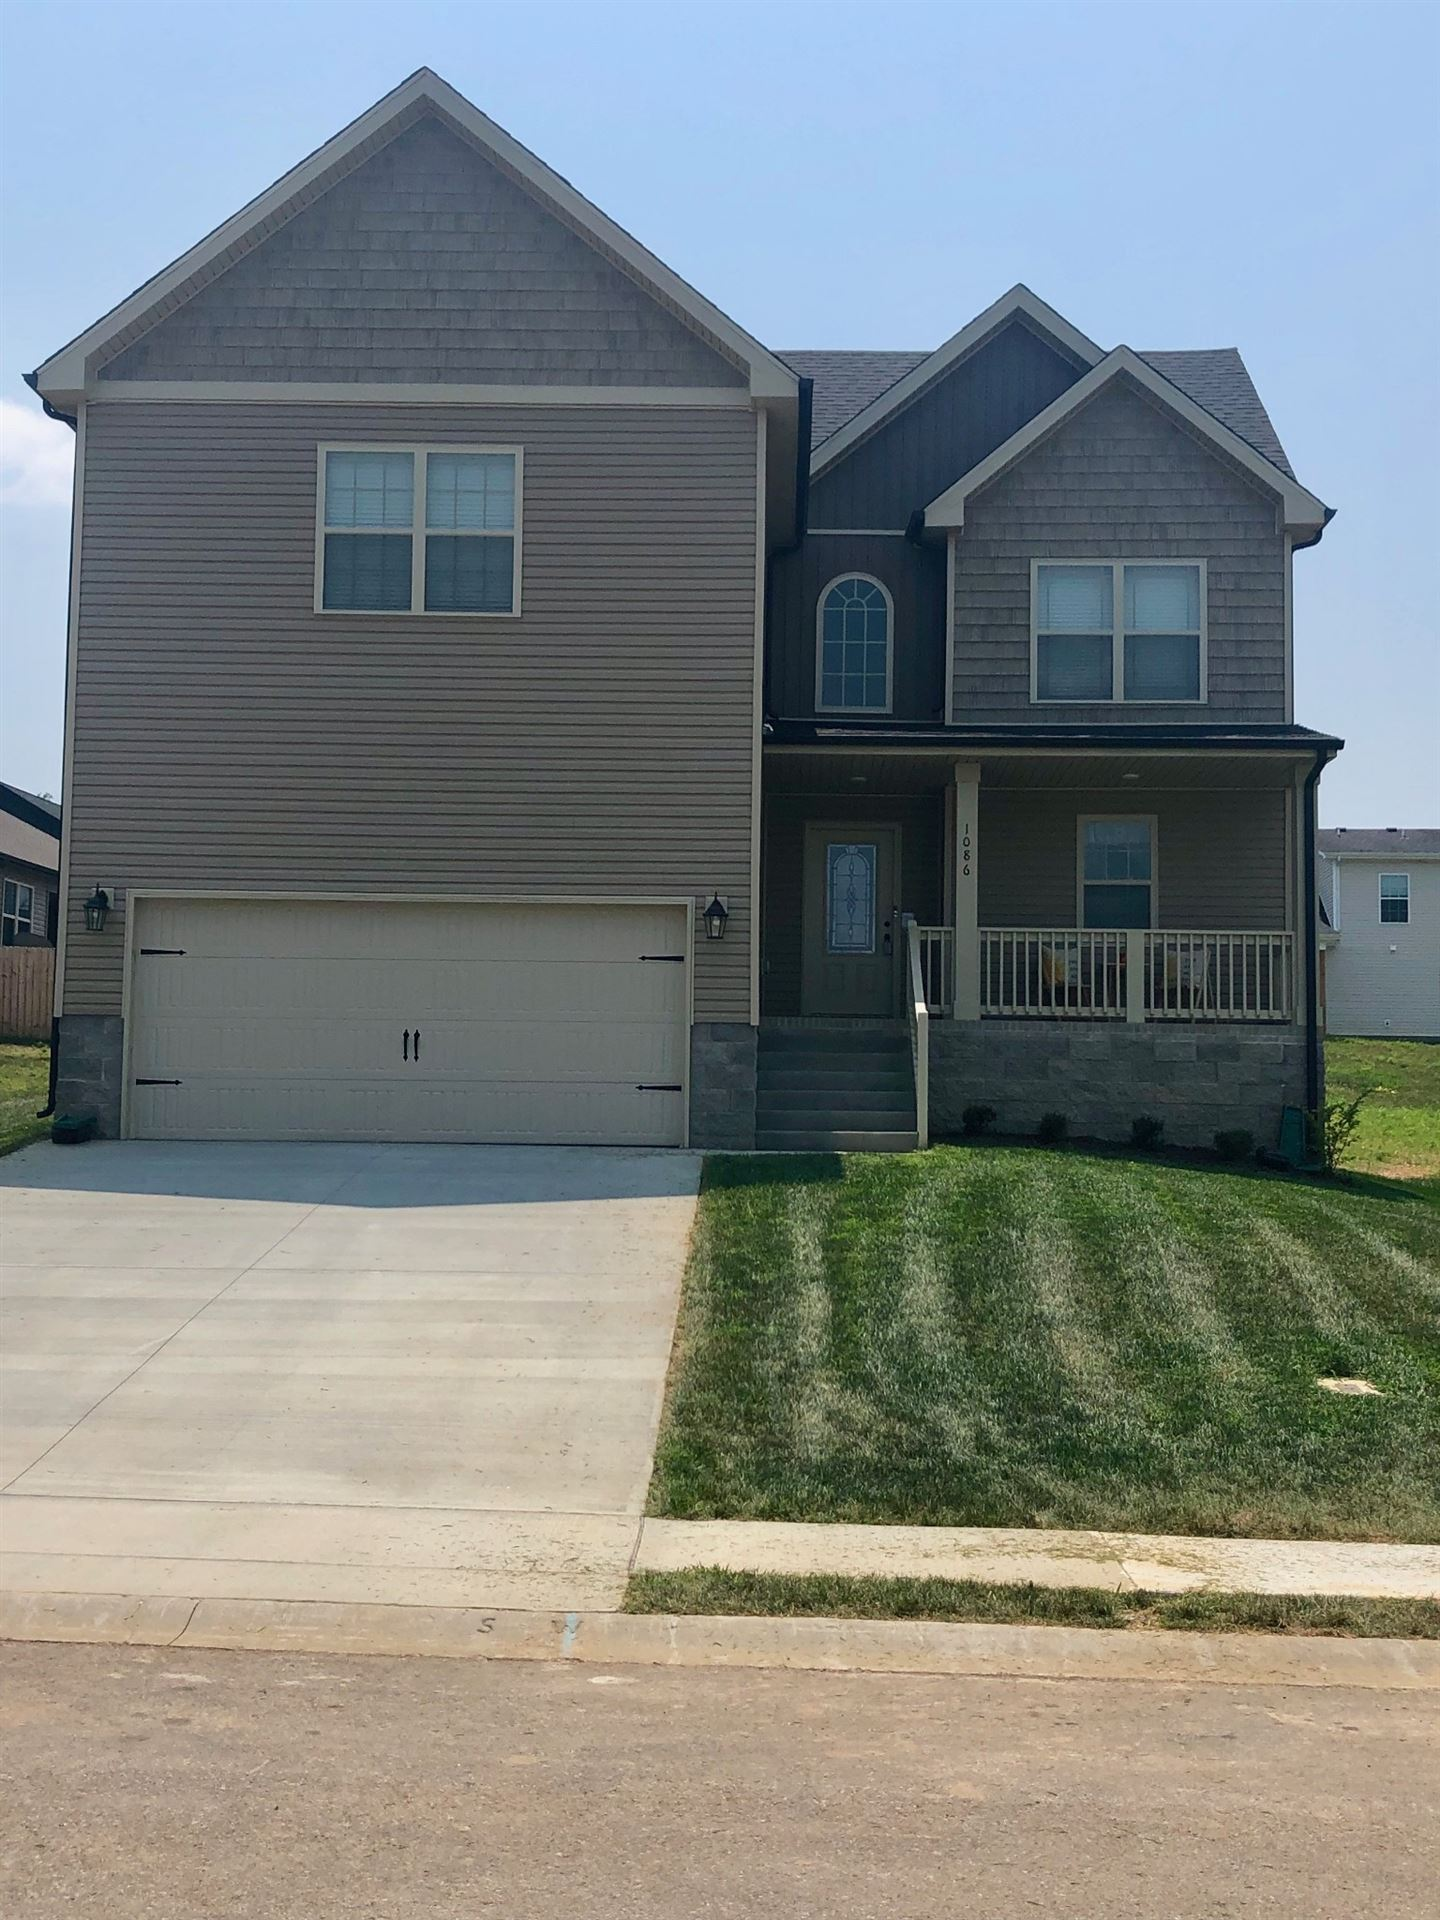 1086 Eagles View Dr, Clarksville, TN 37040 - MLS#: 2274376